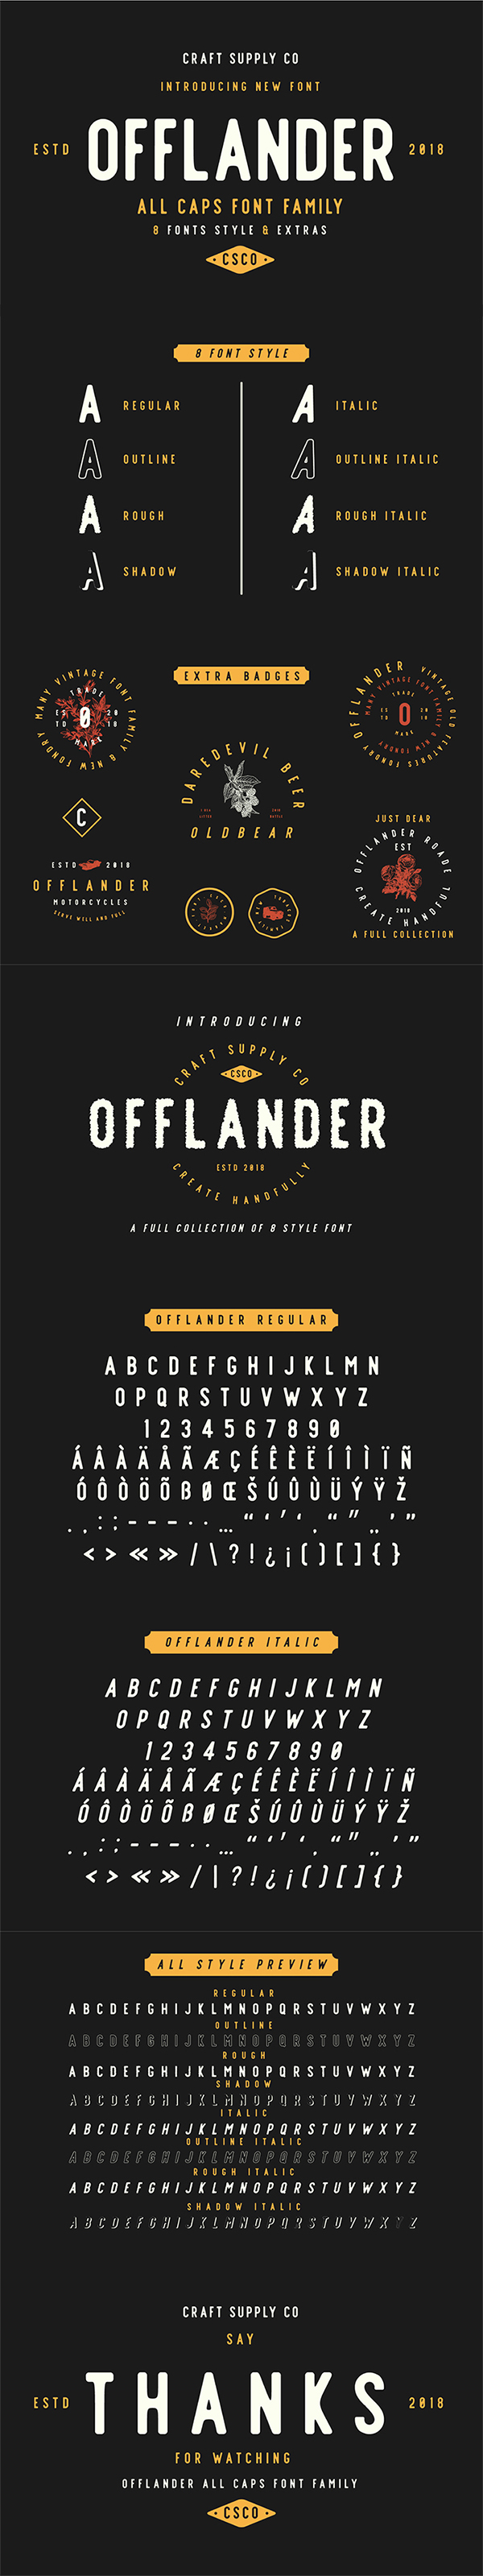 Freebie : Awesome Offlander All Caps Font & Extras For Designers